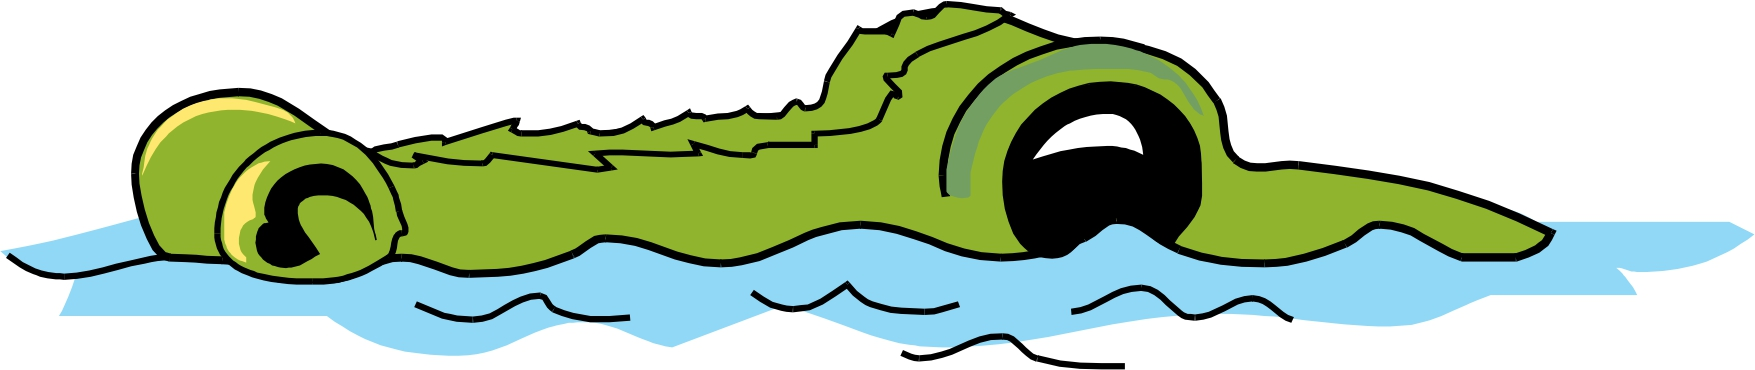 crocodile in water clipart